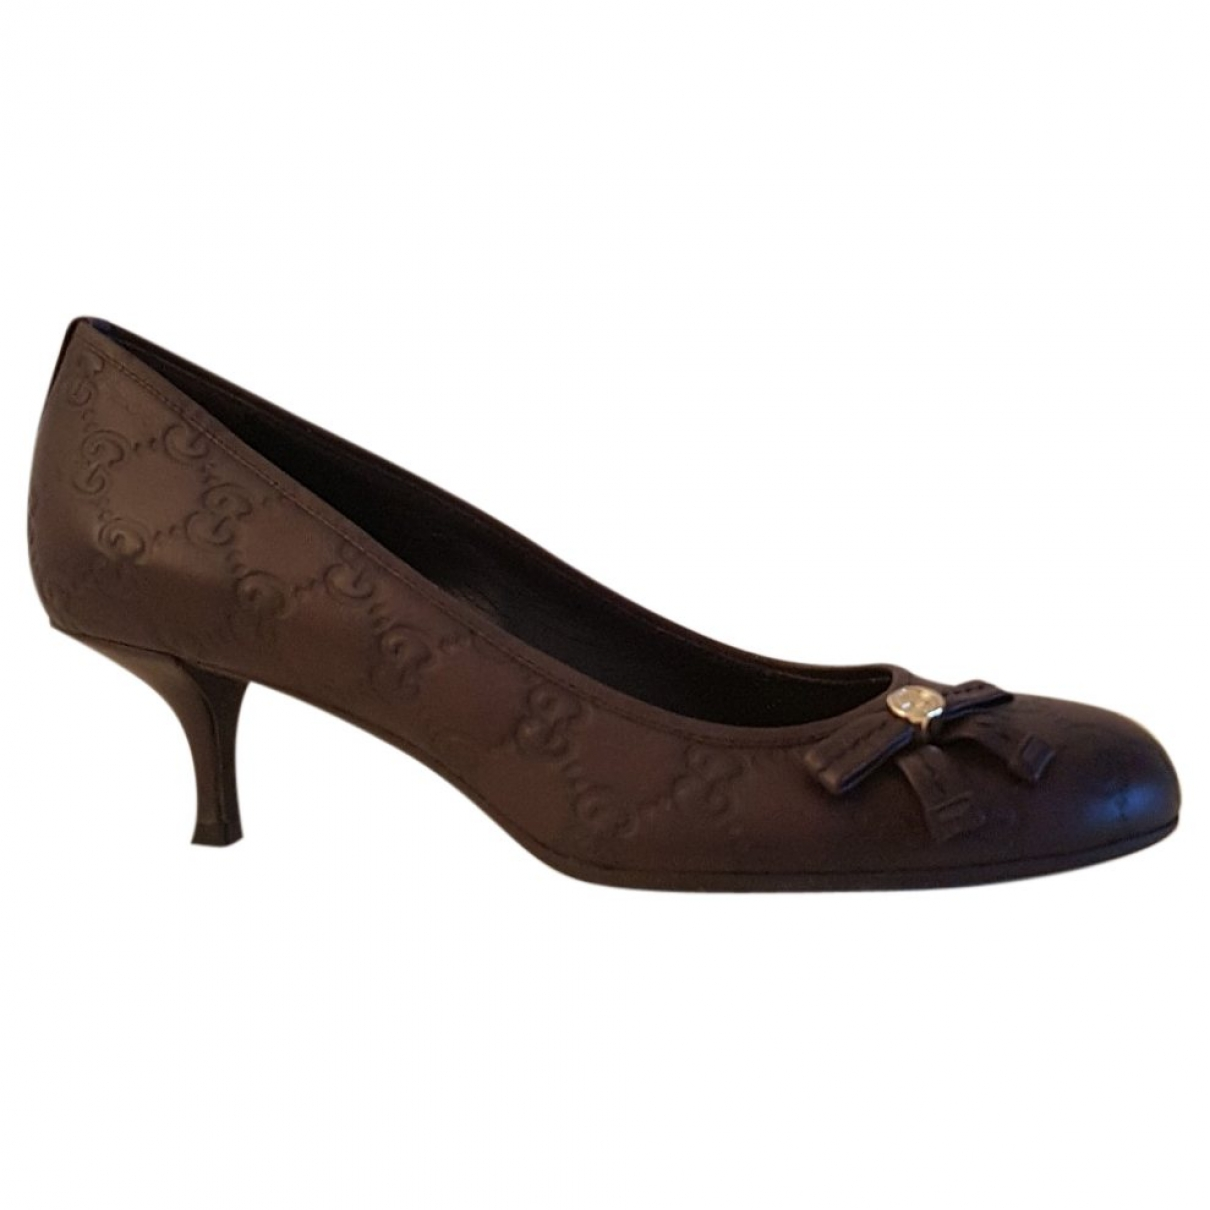 Gucci \N Brown Leather Heels for Women 38 EU